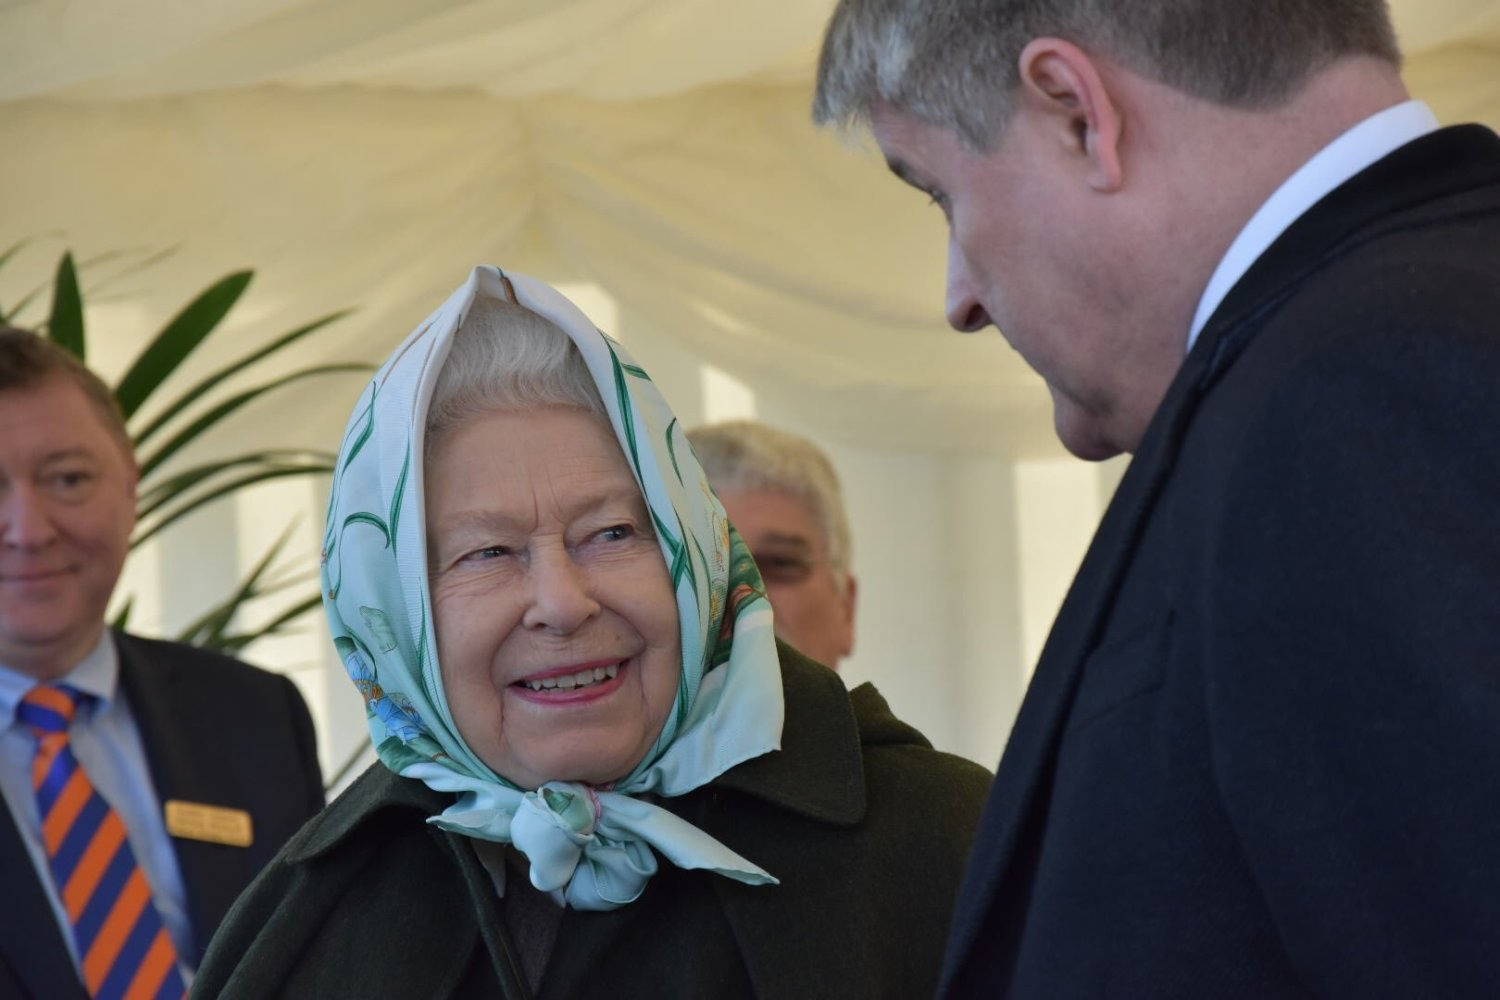 The Queen opened Wolferton Pumping Station, more than seven decades after her father opened the original (Royal Family)